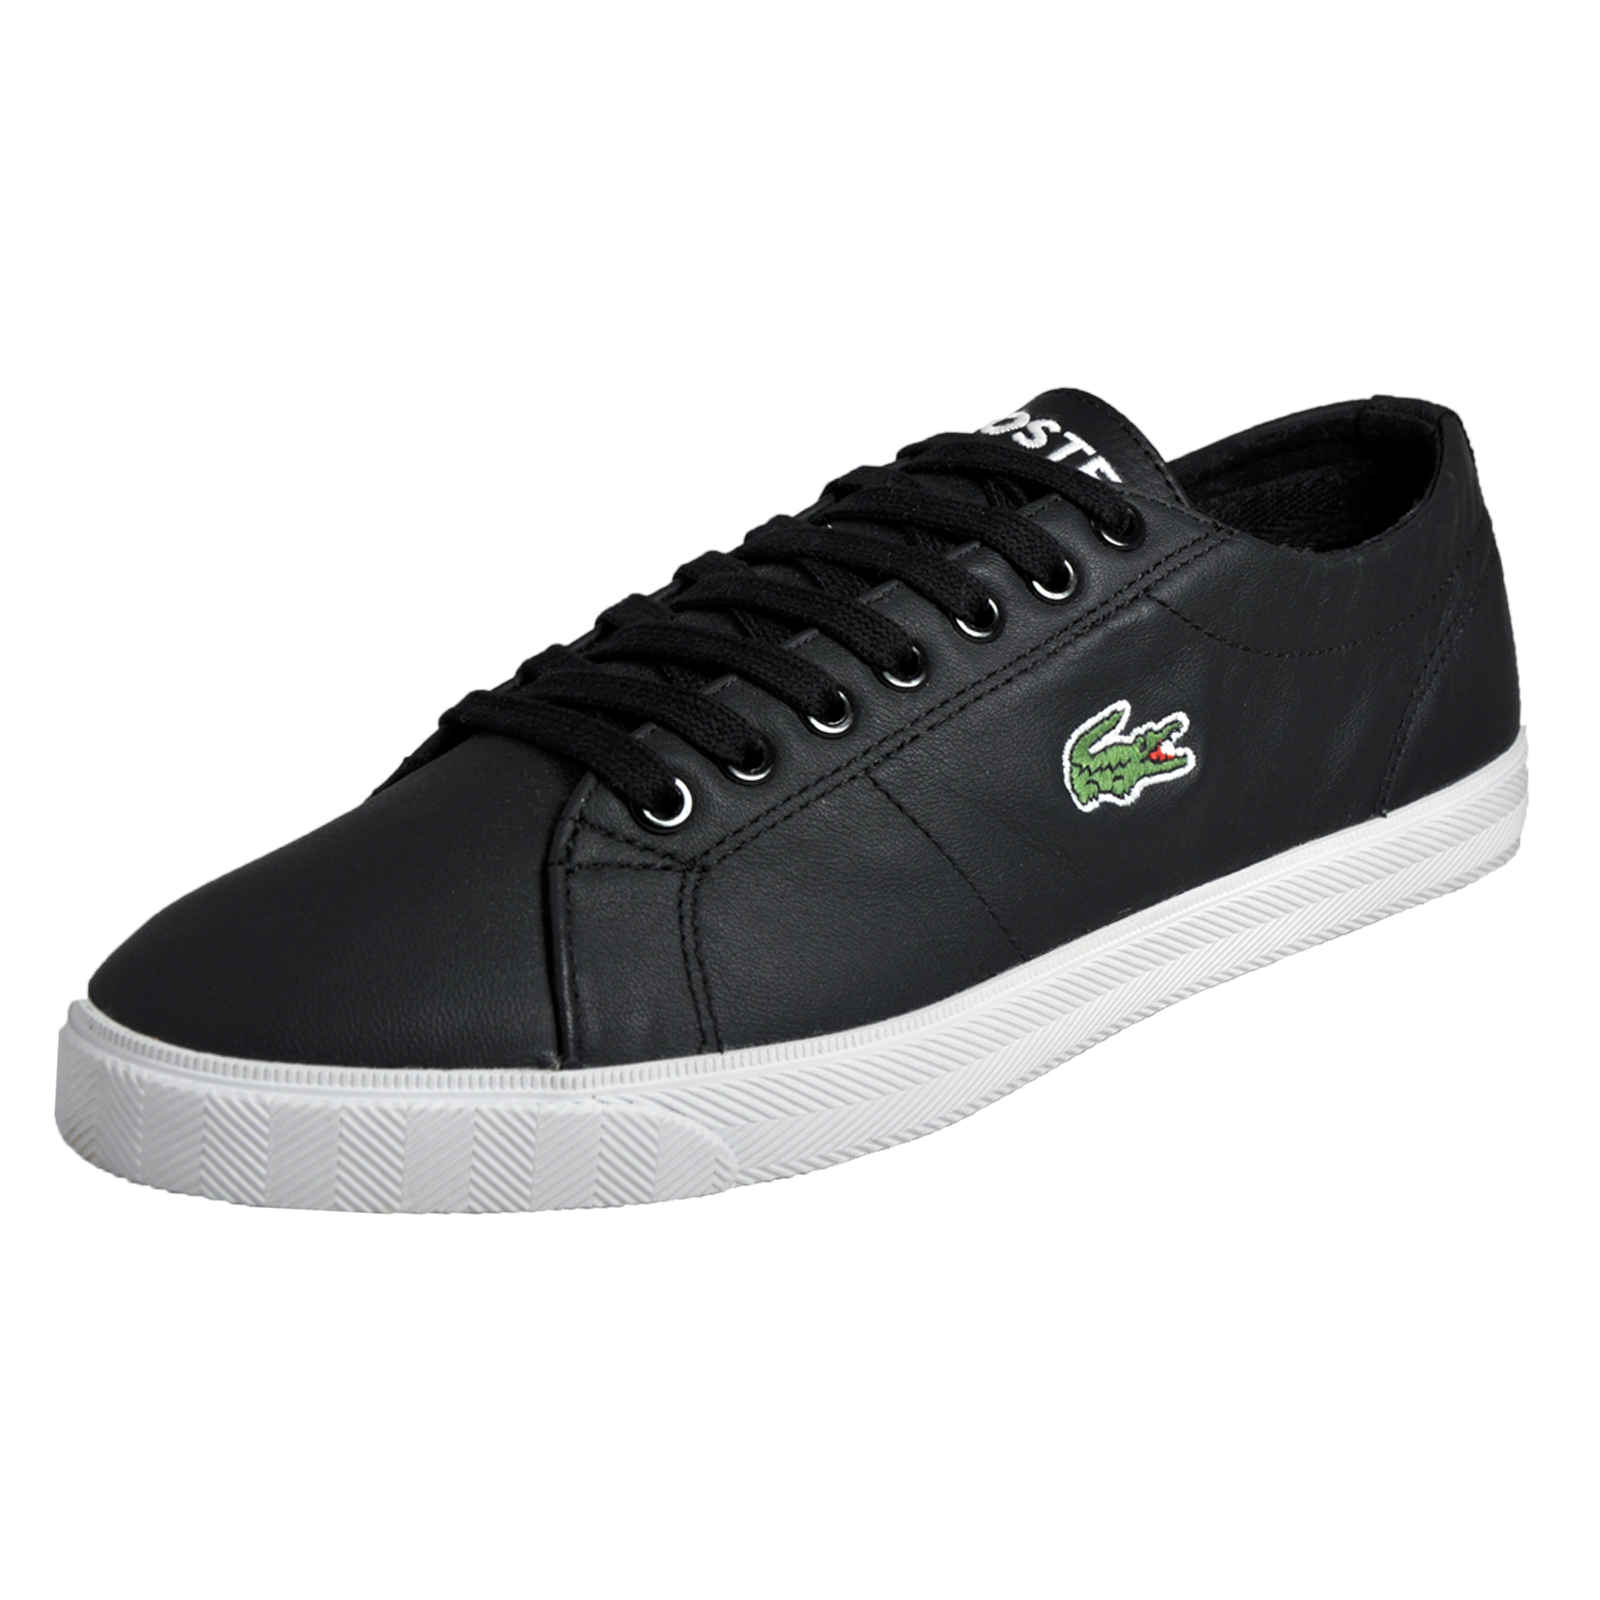 ff0635a86aadec Lacoste Marcel LCR3 SPM Mens Classic Casual Designer Leather Plimsoll Trainers  Black